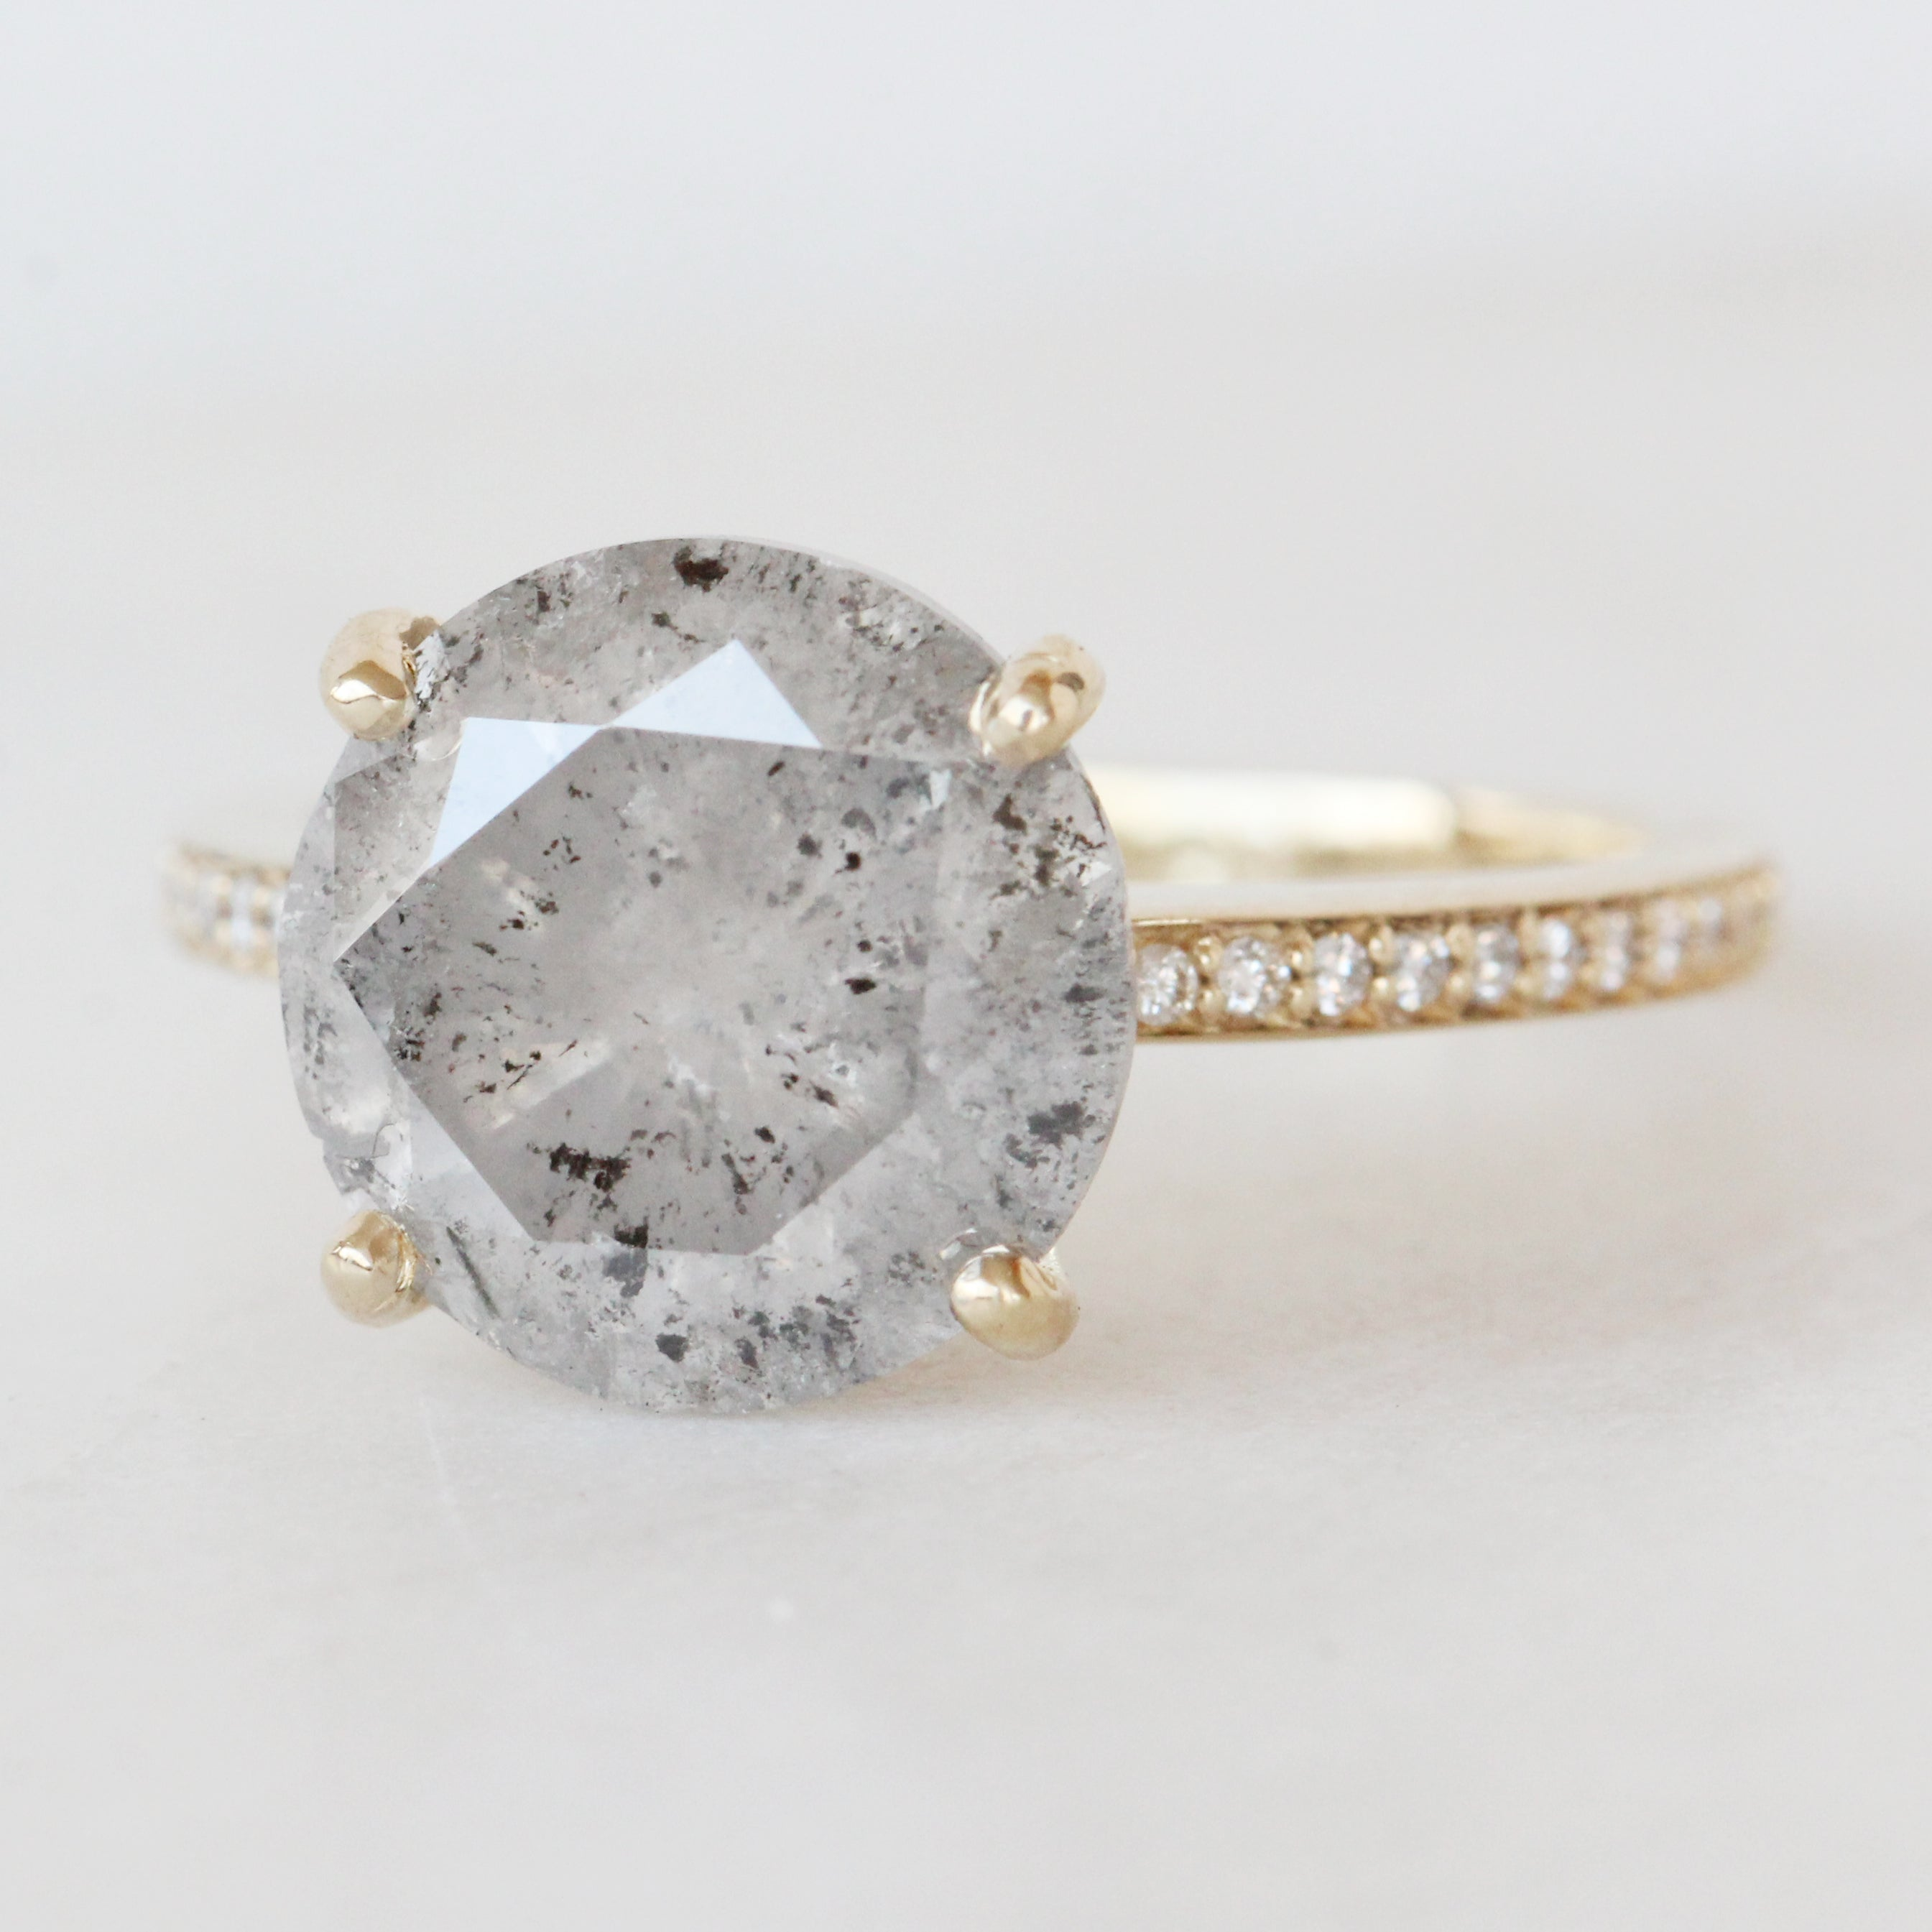 Imani Ring with a 4.87 Carat Celestial Diamond in 14k Yellow Gold - Ready to size and ship - Midwinter Co. Alternative Bridal Rings and Modern Fine Jewelry